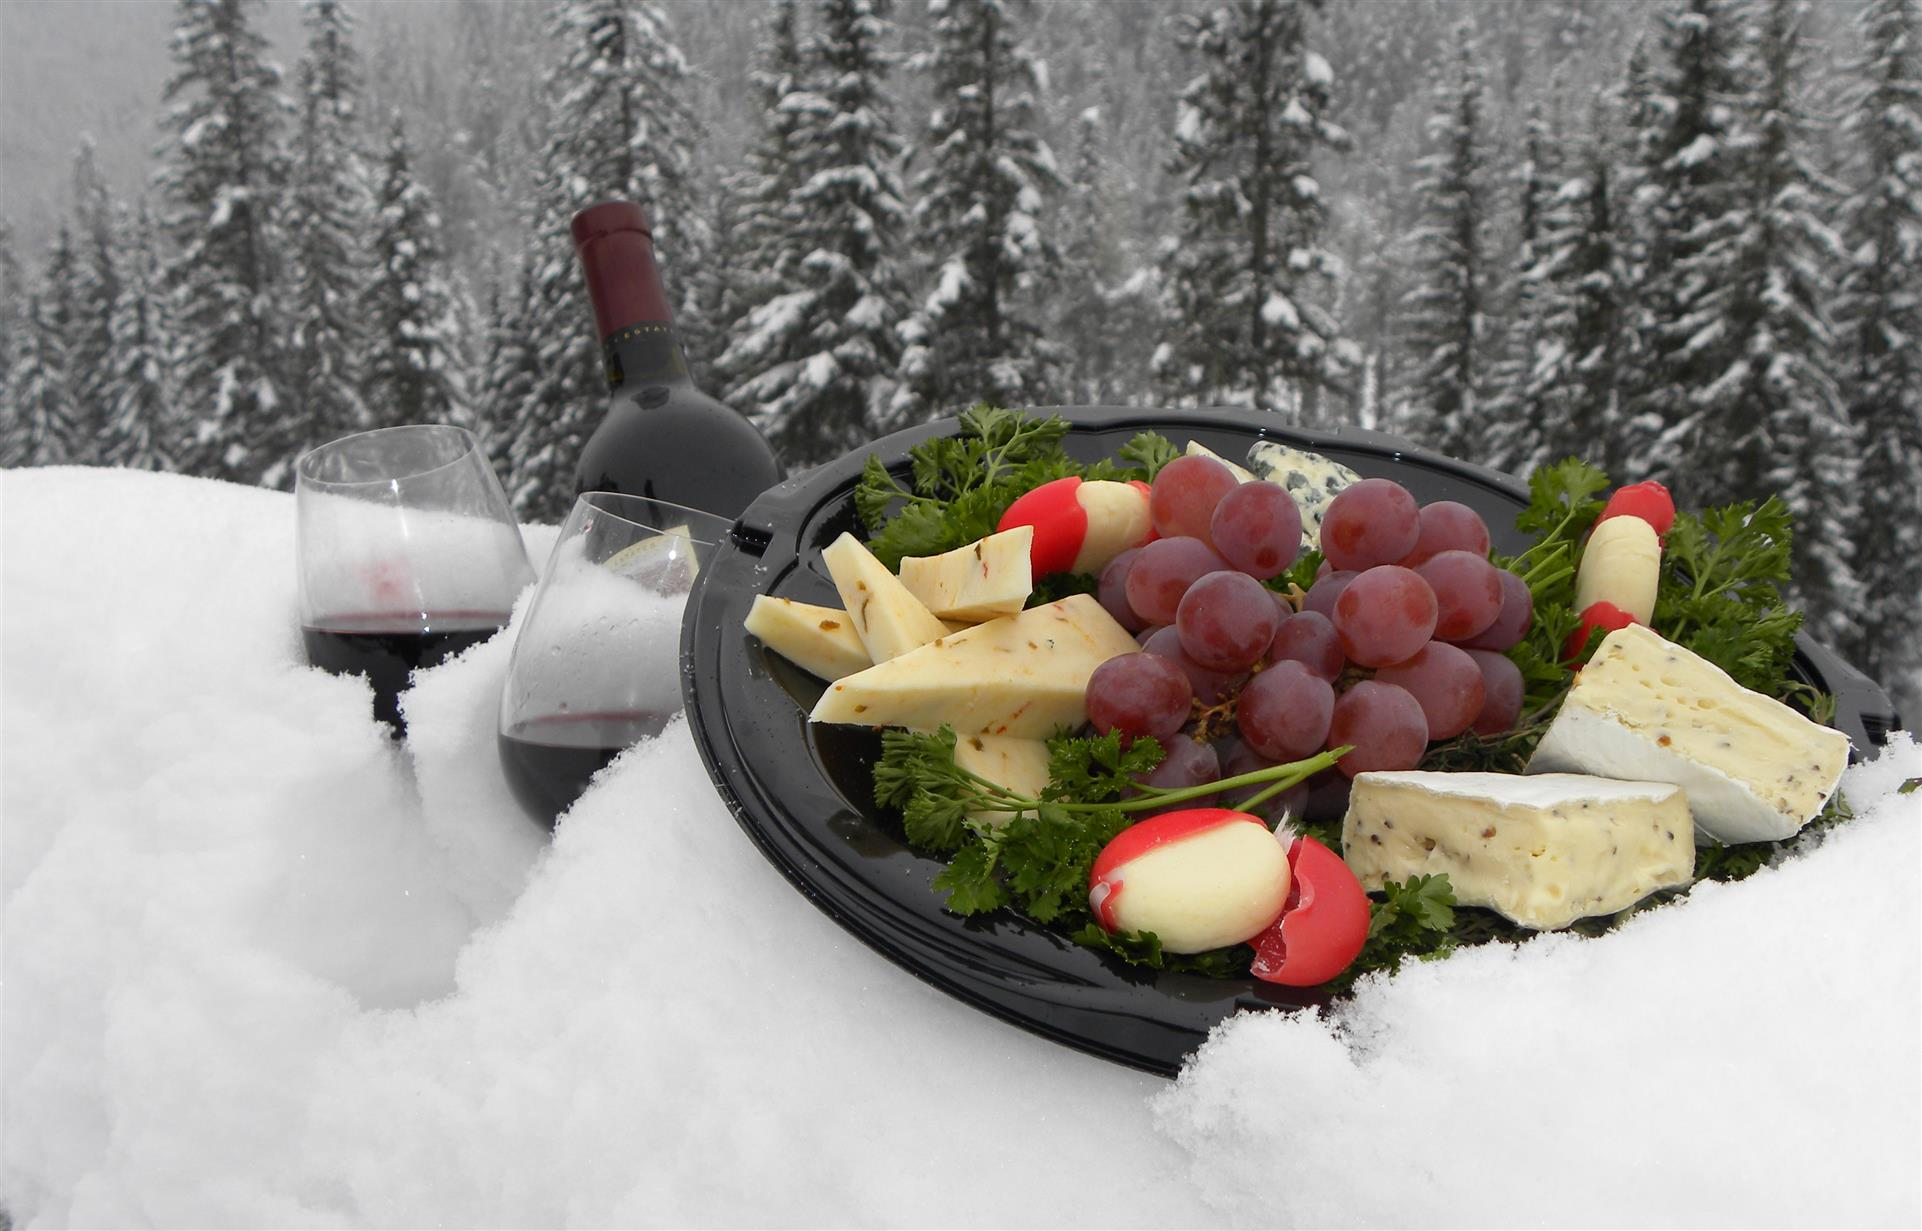 platter with grapes, cheese, and wine in the snow